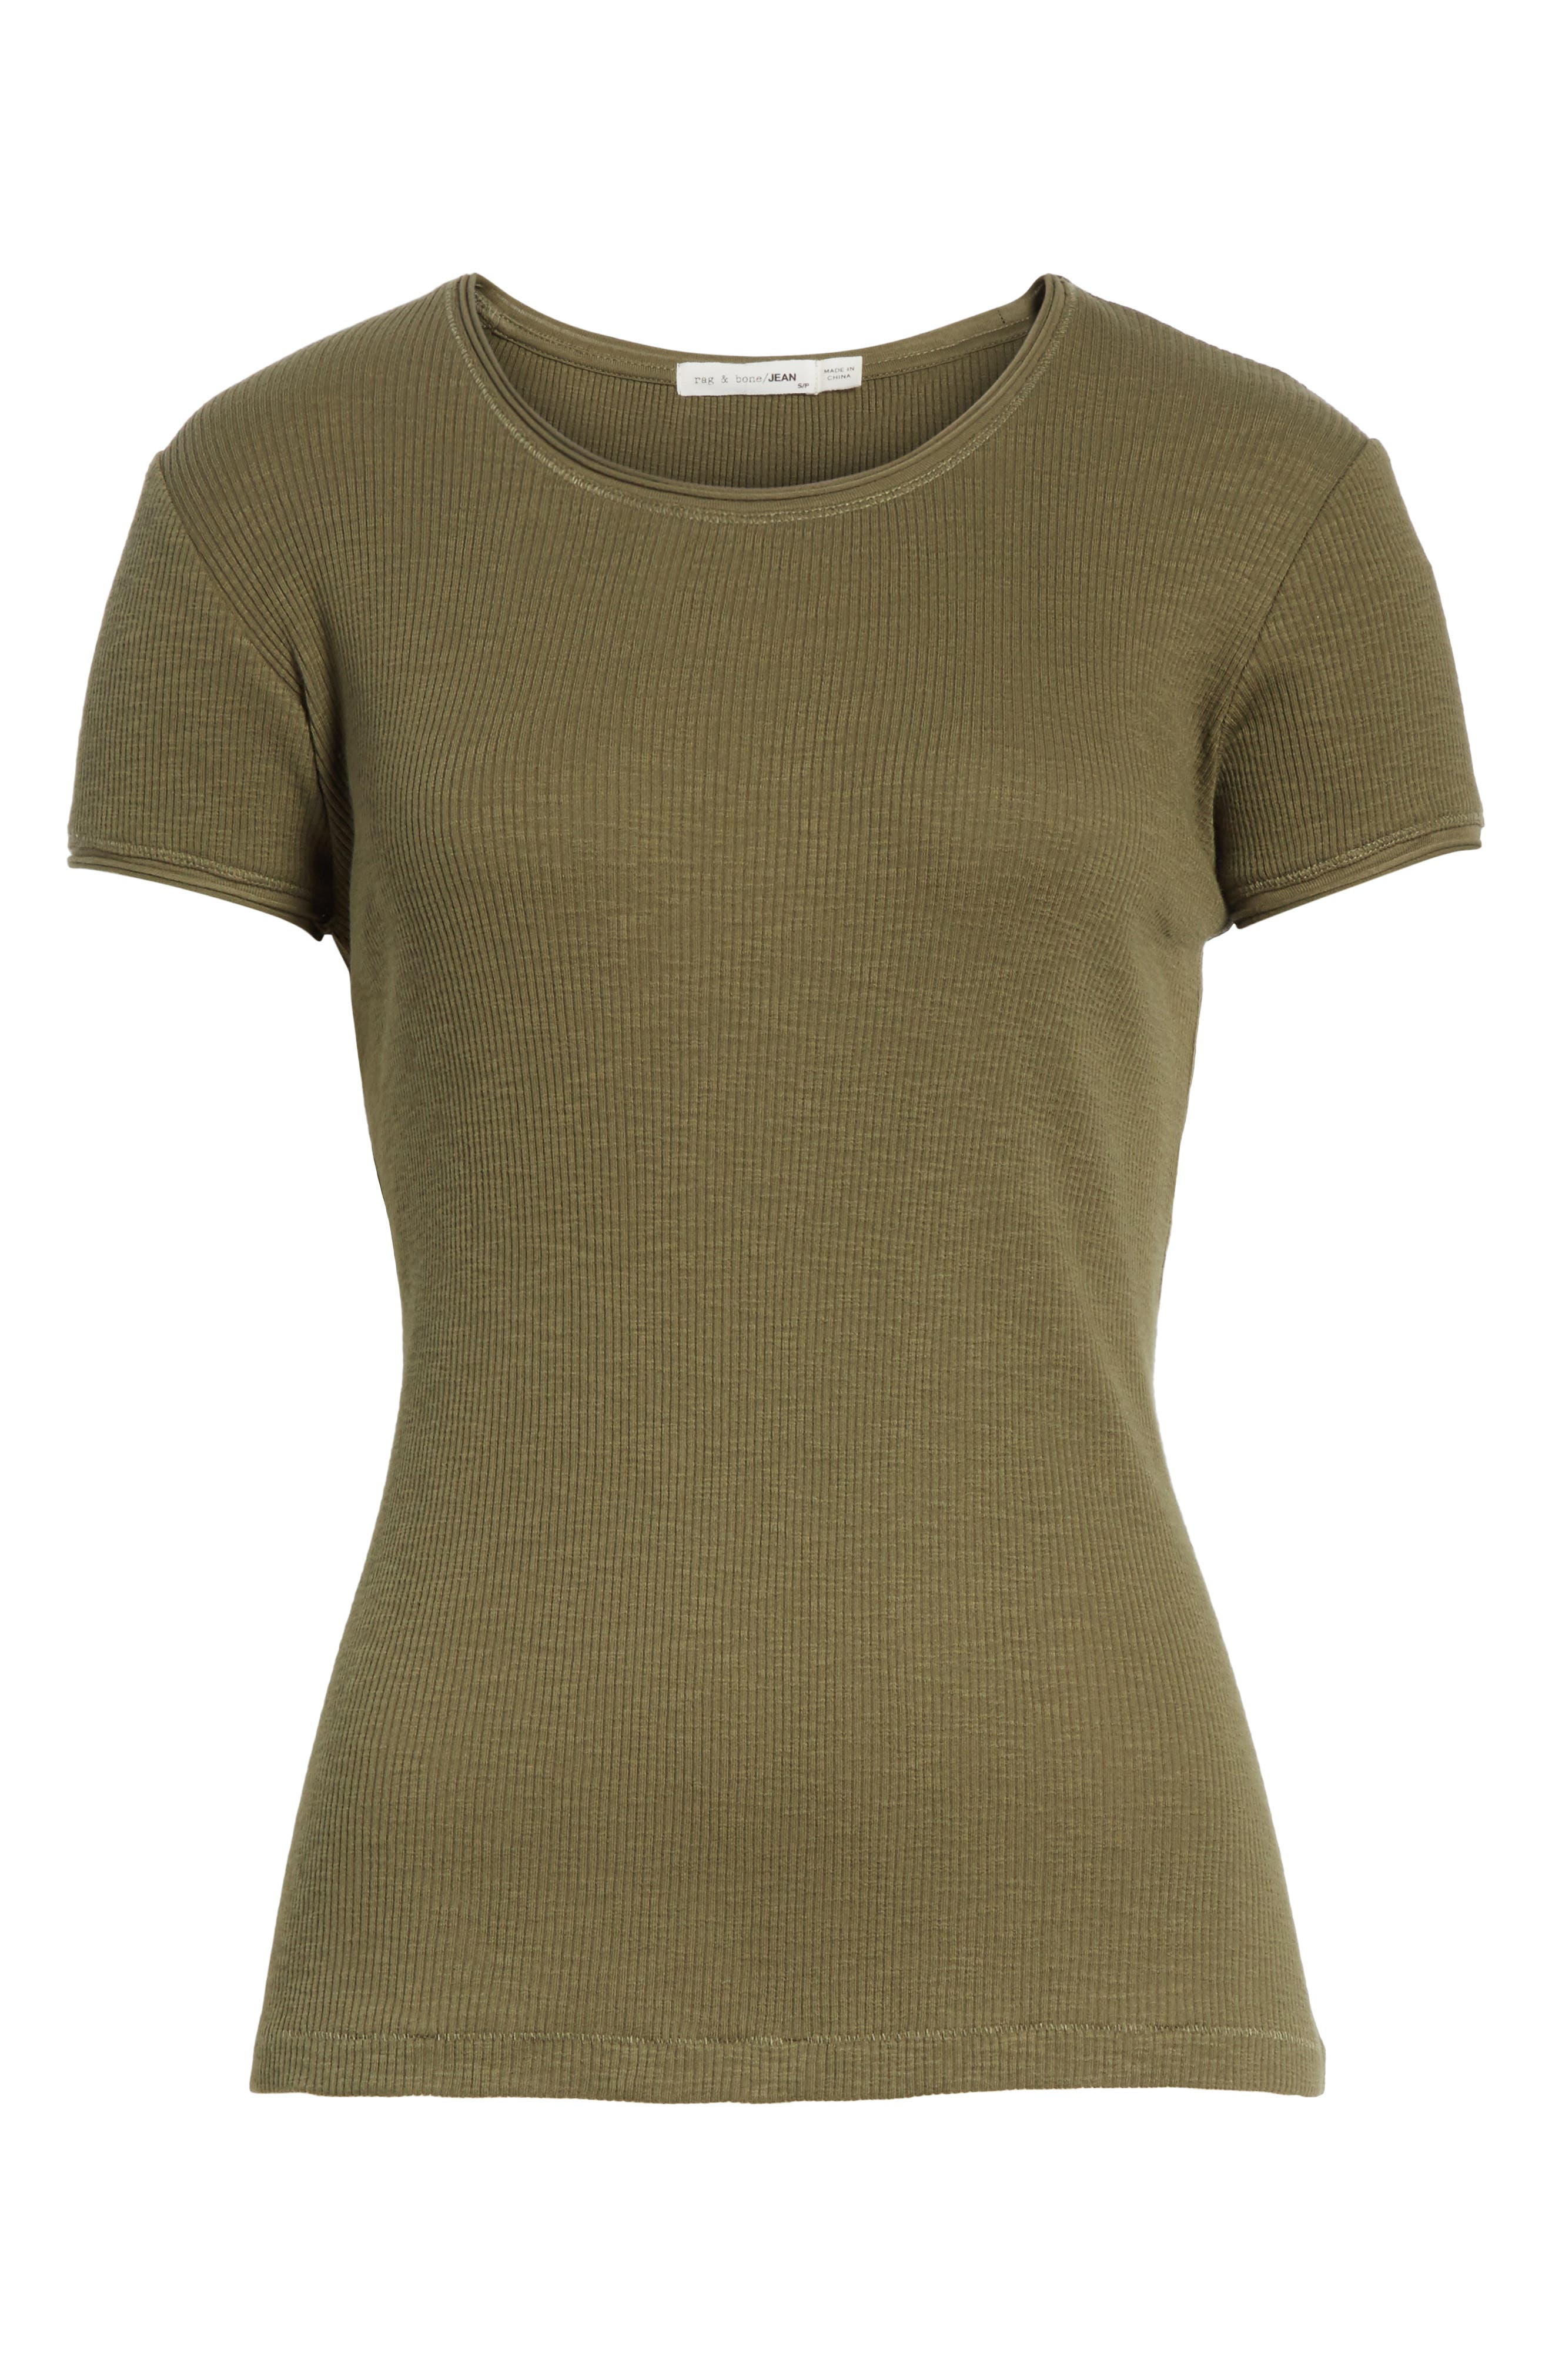 Lilies Tee,                             Alternate thumbnail 6, color,                             Dark Olive